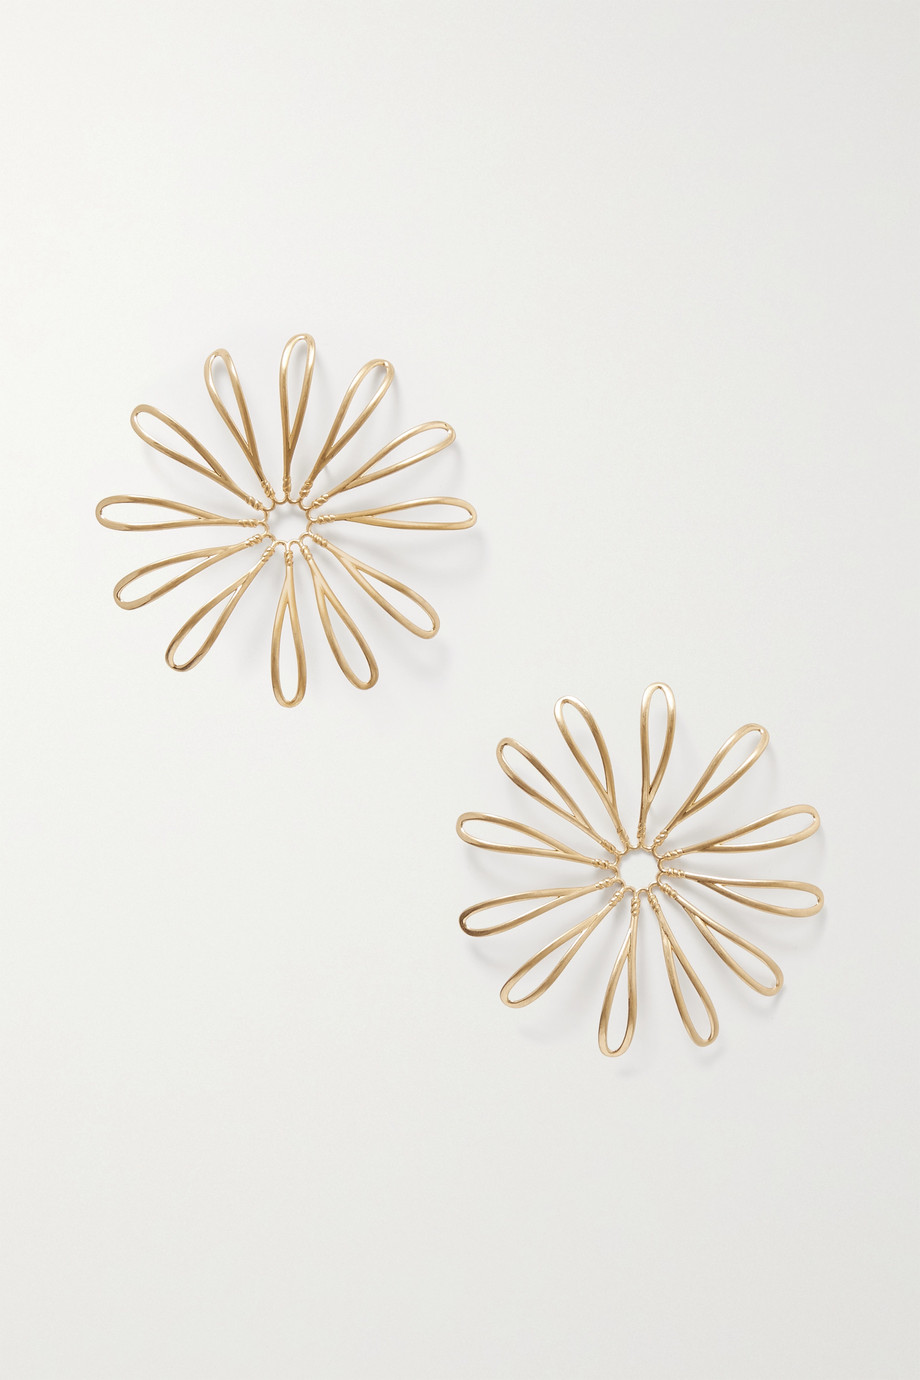 Jacquemus Les Fleurs gold-tone earrings